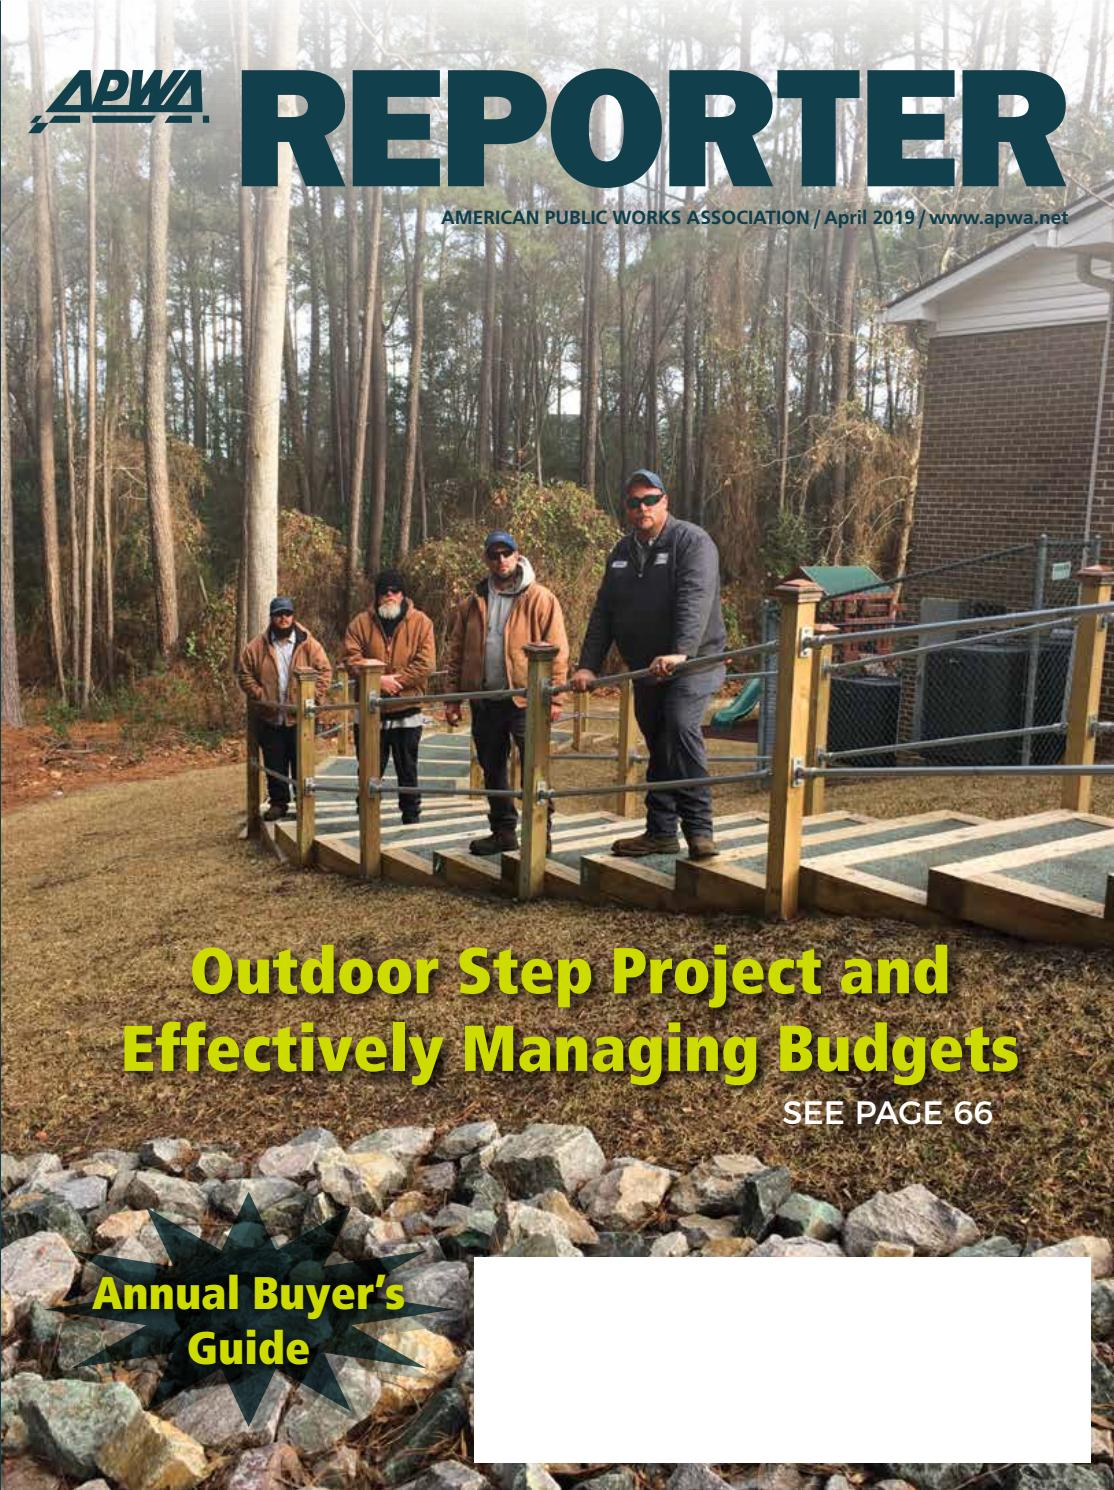 APWA Reporter, April 2019 issue by American Public Works Association